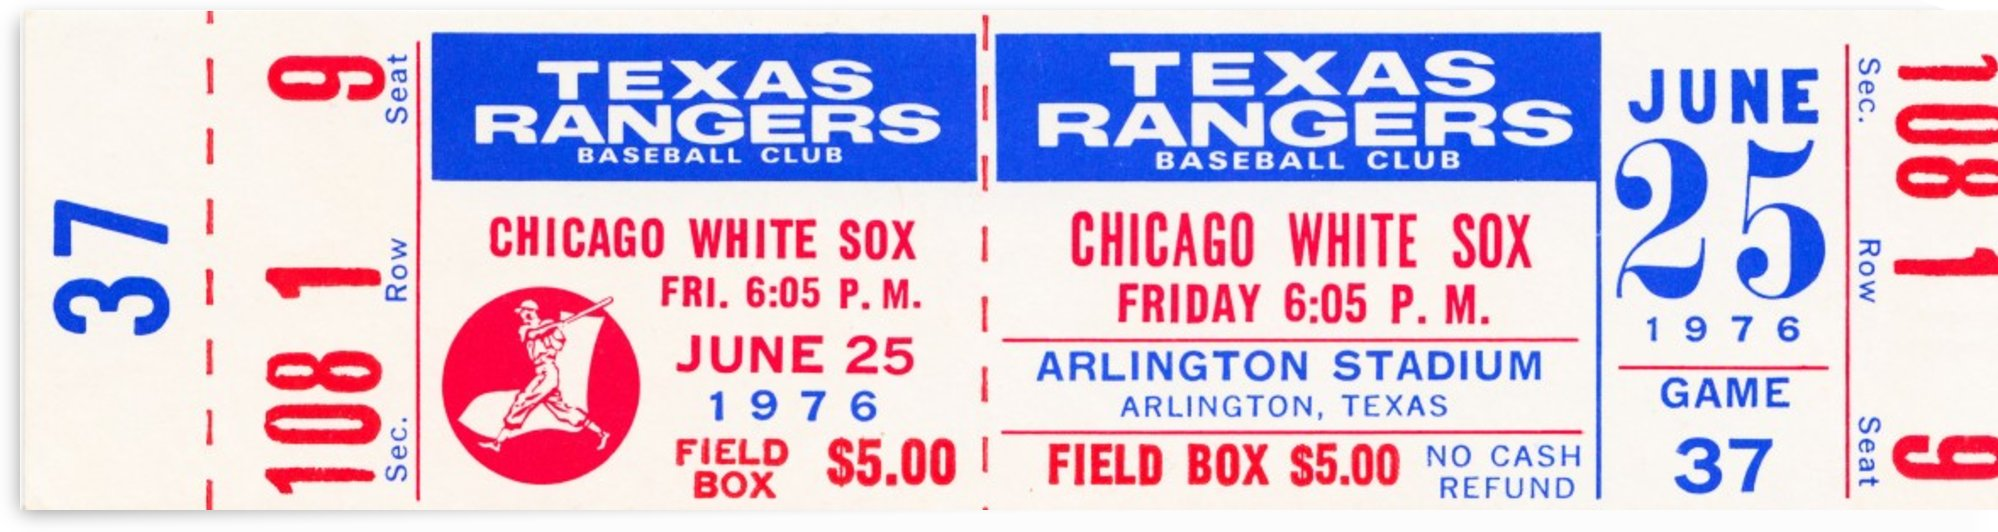 1976 texas rangers chicago white sox ticket stub wall art by Row One Brand